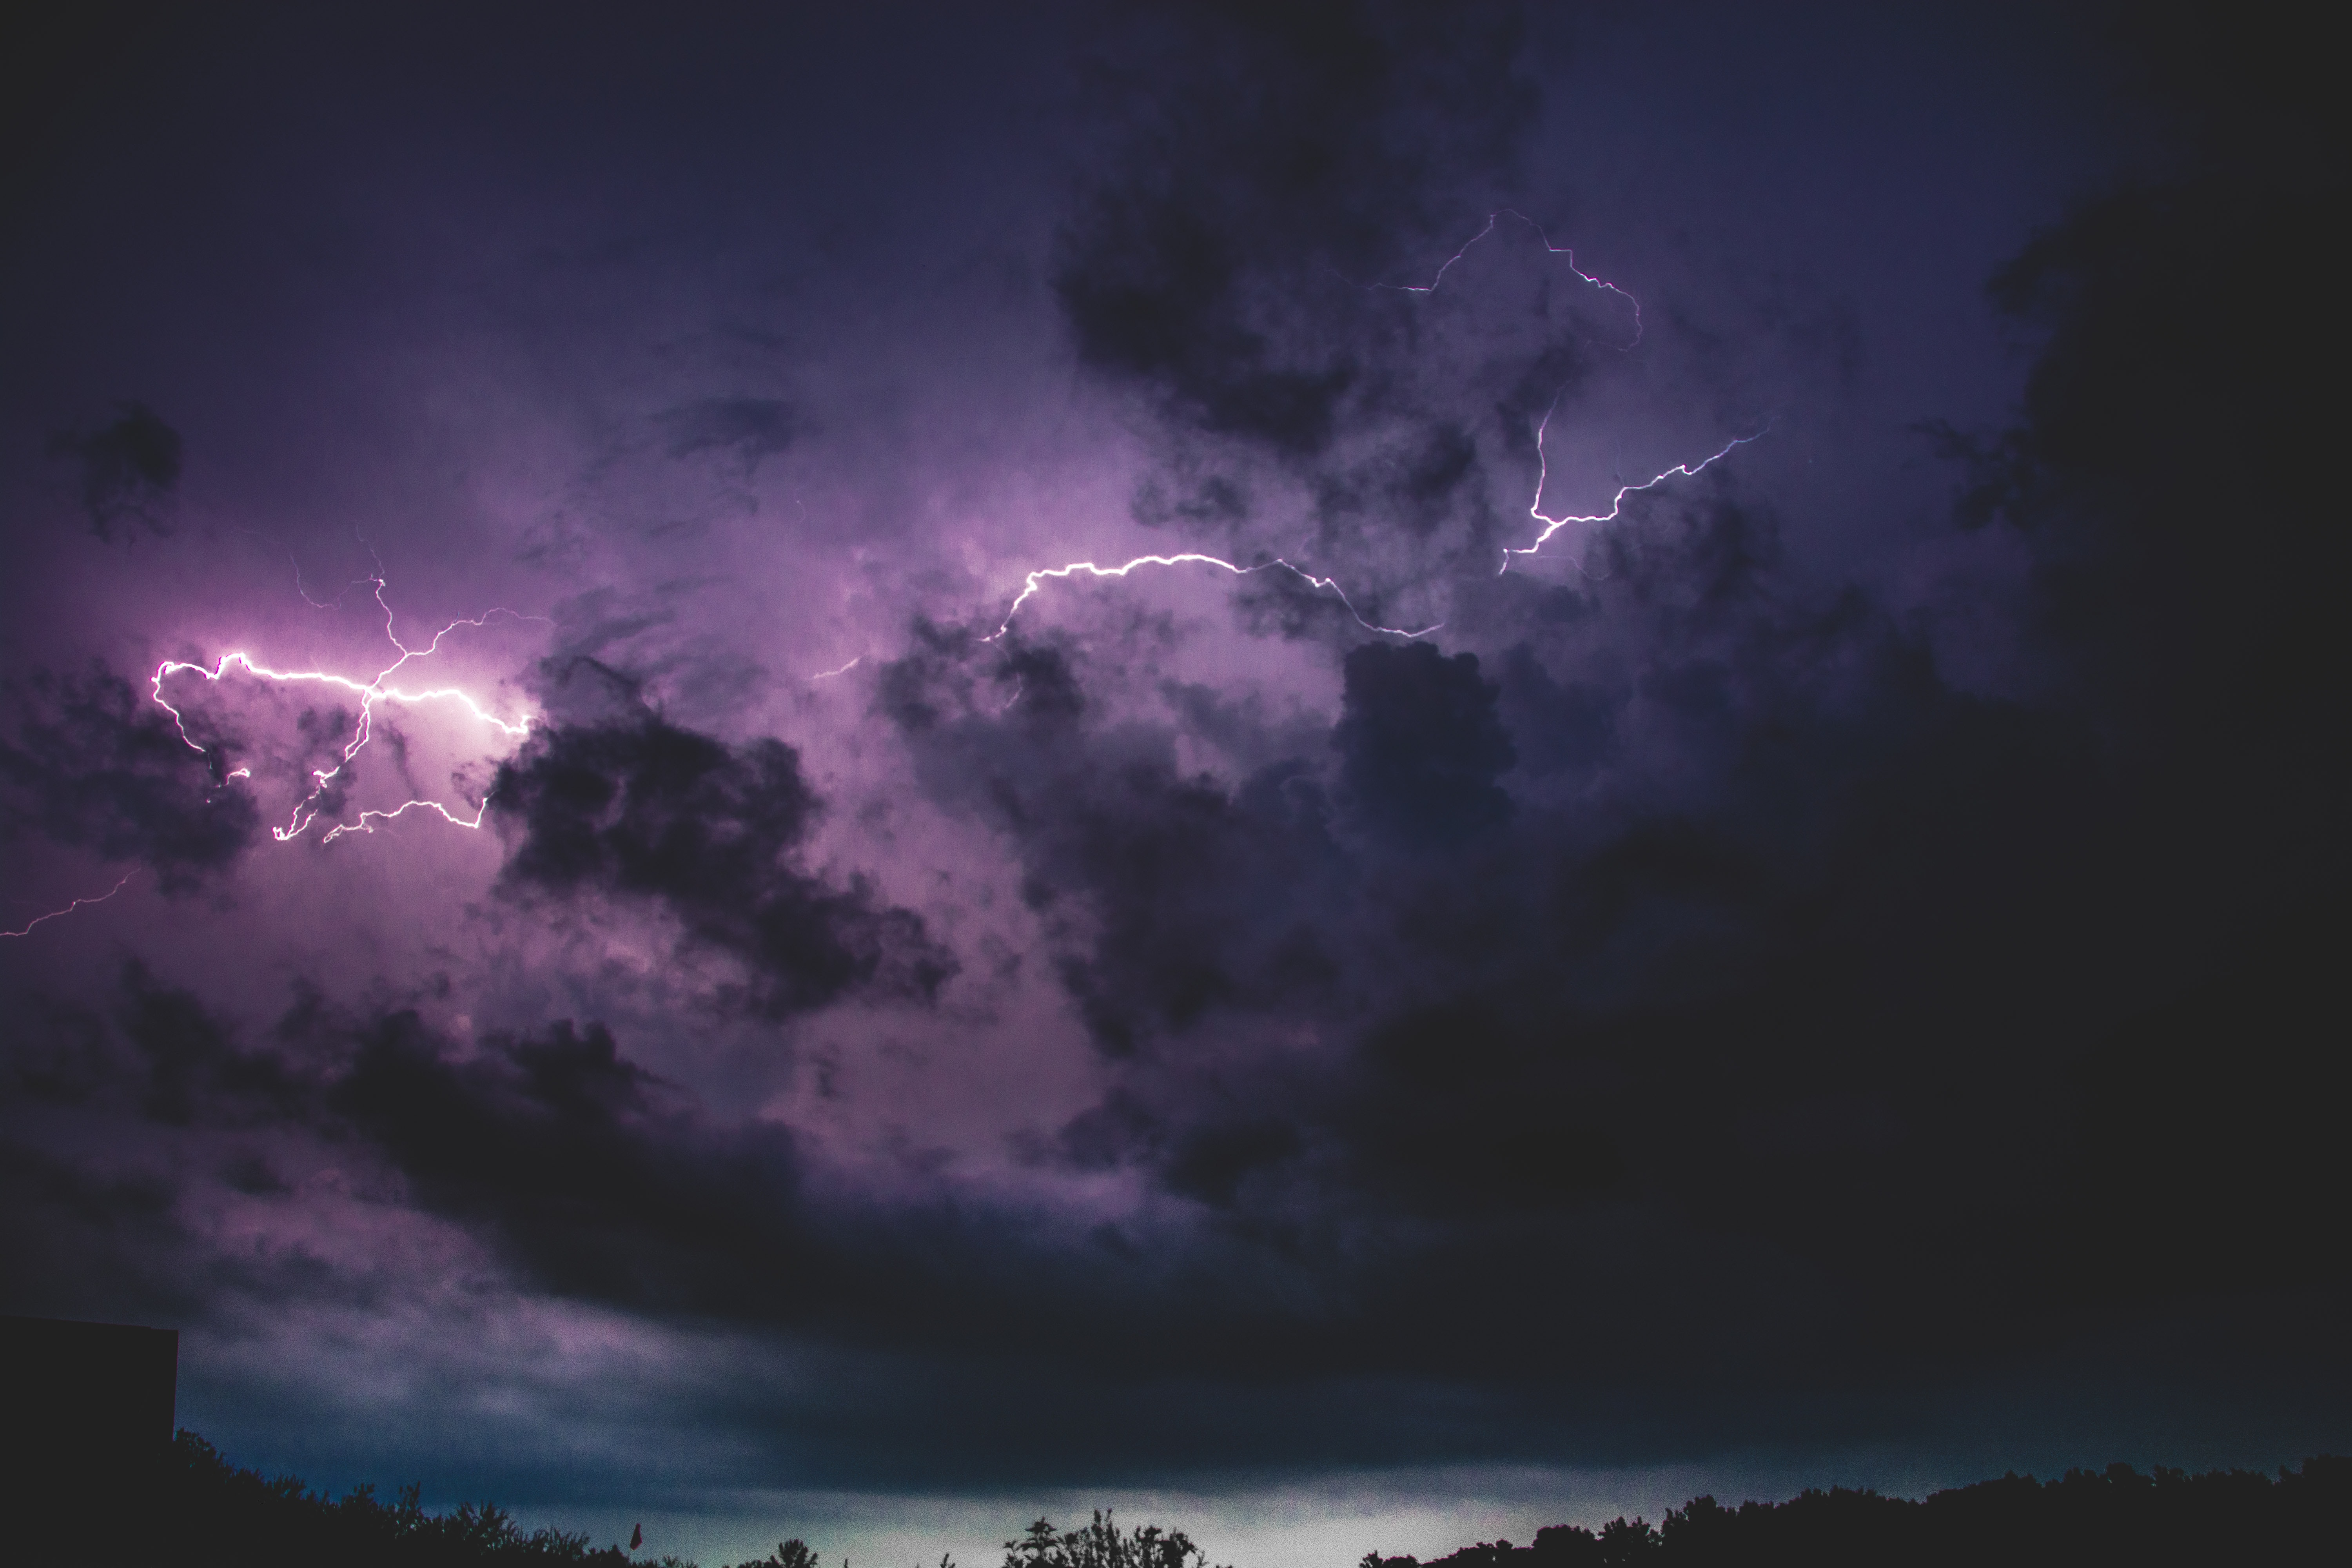 Lightning in Clouds at Night